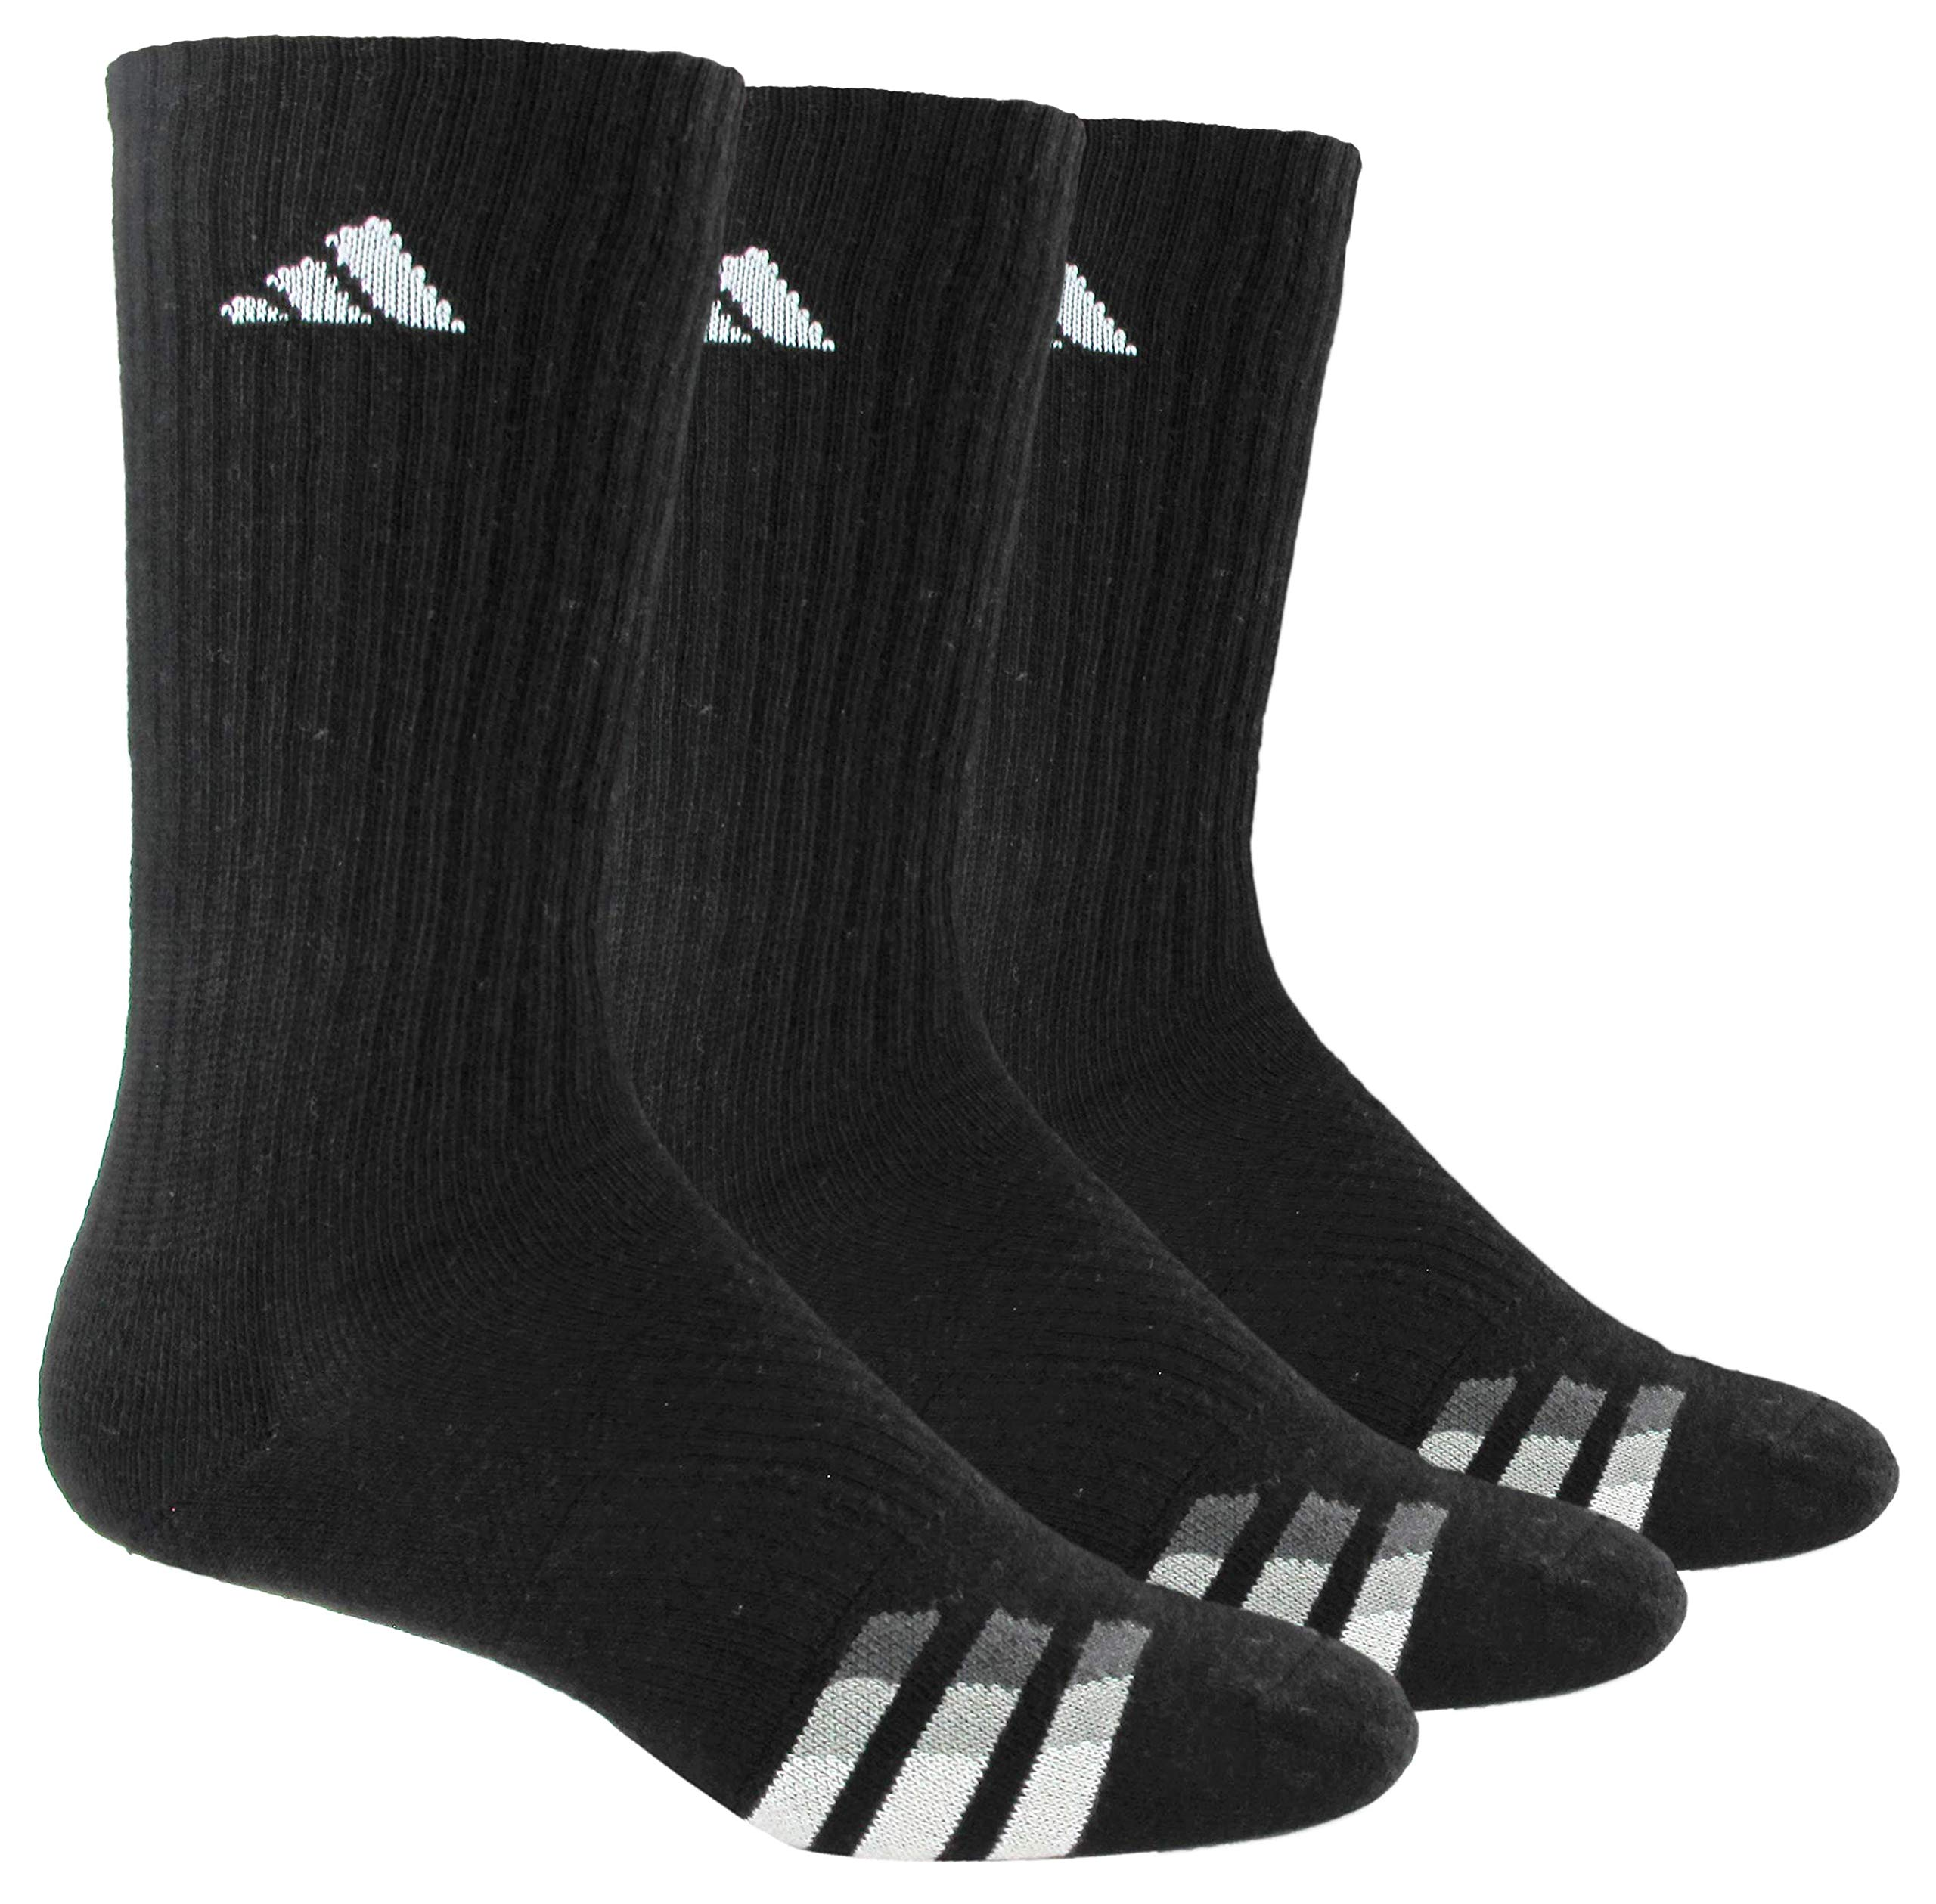 adidas Men's Cushioned Crew Socks (3-Pair), Black/White/Light Onix/Granite, Large, (Shoe Size 6-12) by adidas